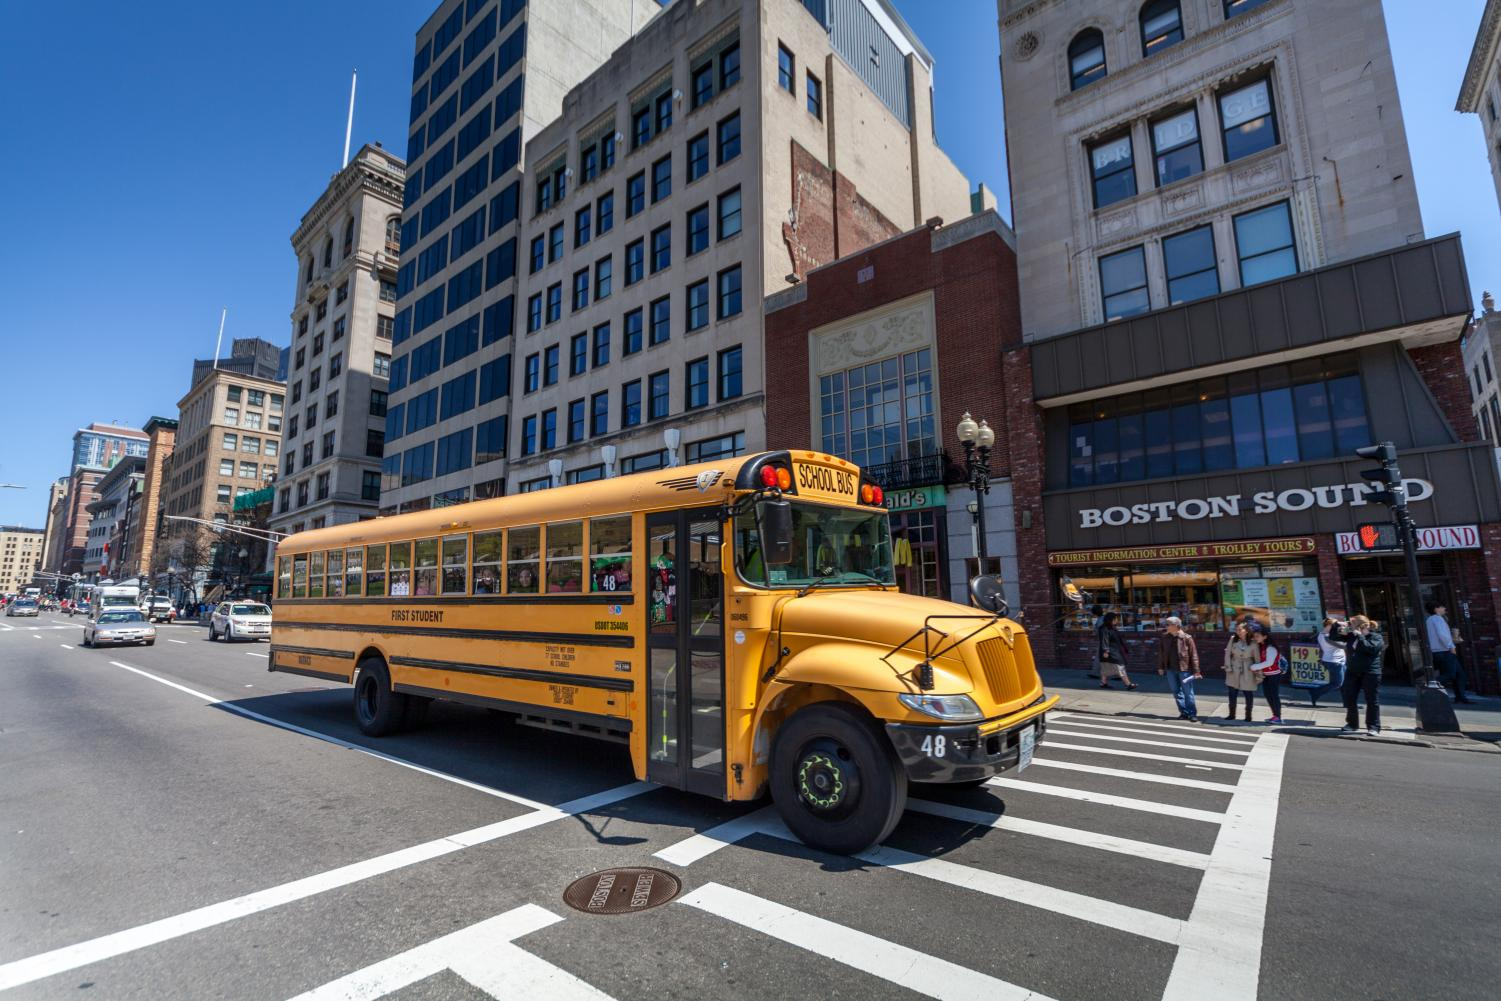 Hoping to improve college retention and graduation rates among former Boston Public Schools students, City Councilor Michael Flaherty has proposed instituting an optional 13th year of school.